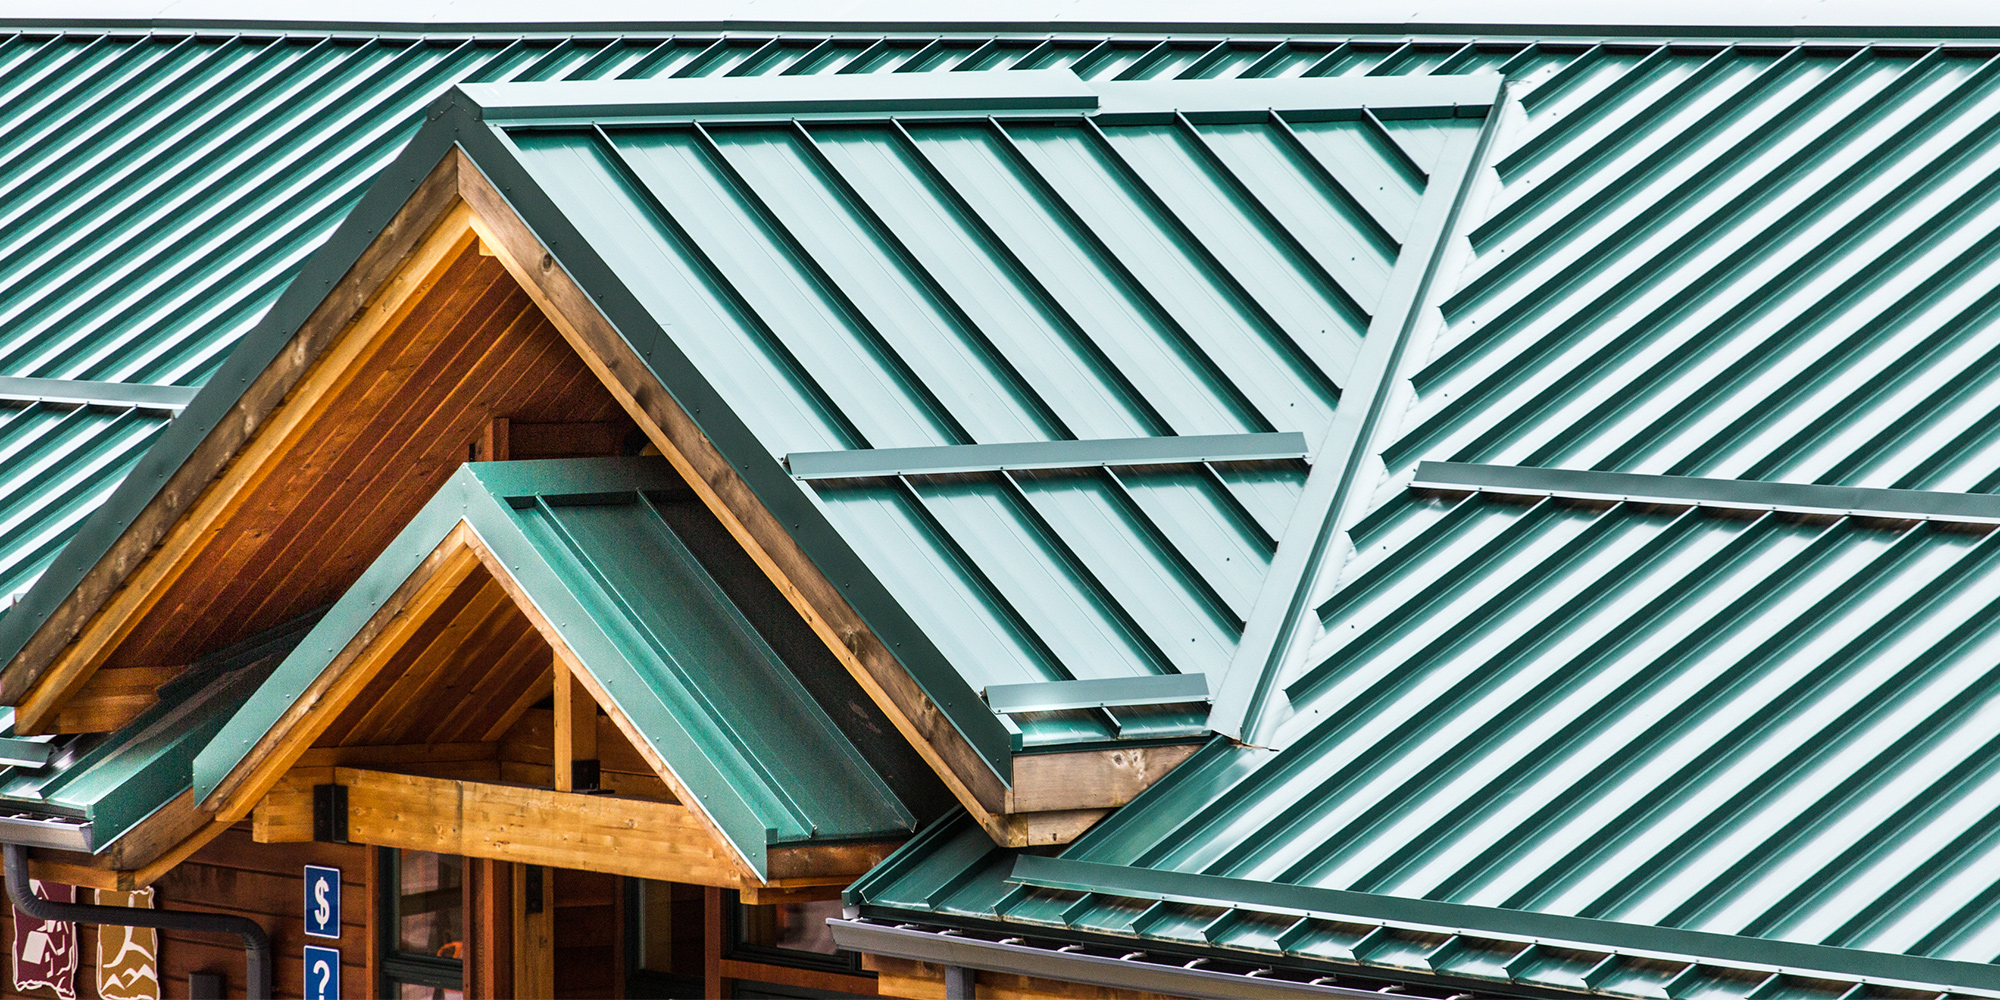 Residential and Commercial Metal Roofing Systems   Metal roofing systems are innovative and durable, leading the way when it comes to fire protection.    Contact Us